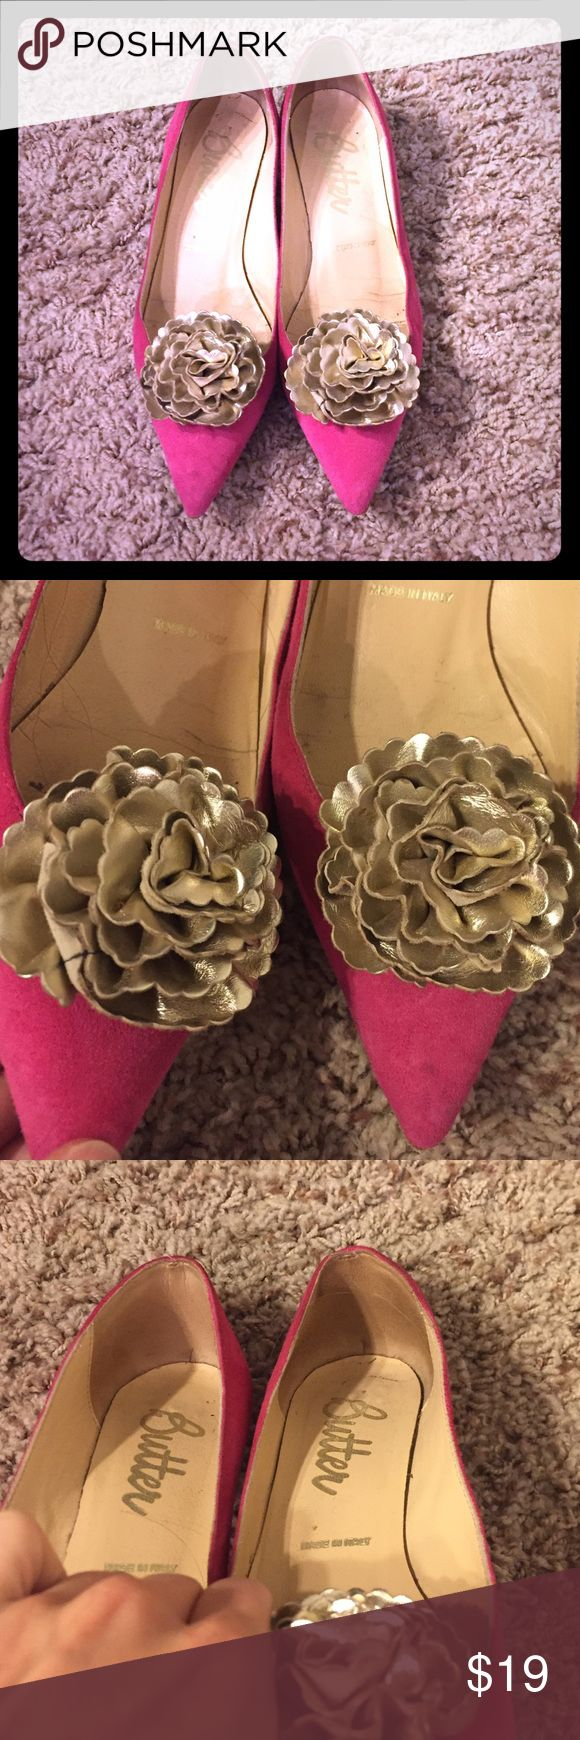 Selling this Butter pink floral shoes on Poshmark! My username is: dianeisacat. #shopmycloset #poshmark #fashion #shopping #style #forsale #Butter Shoes #Shoes